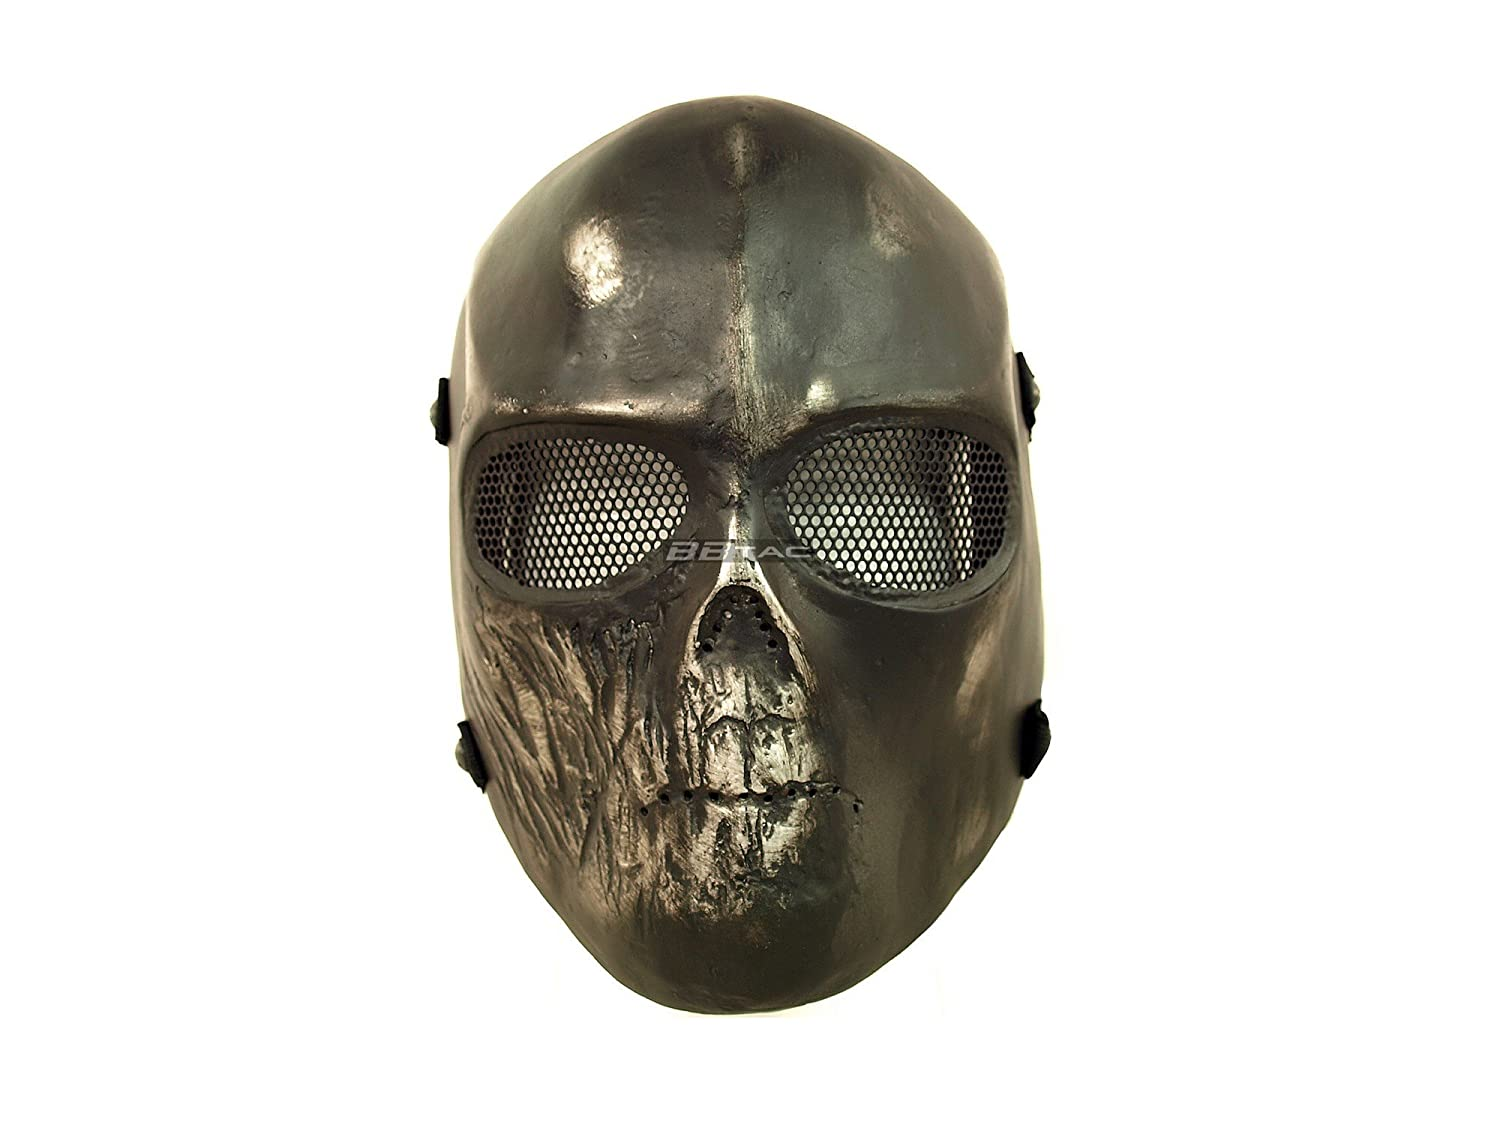 Amazon.com : BBTac Airsoft Mask Black Skull Ghost Recon Full Face ...